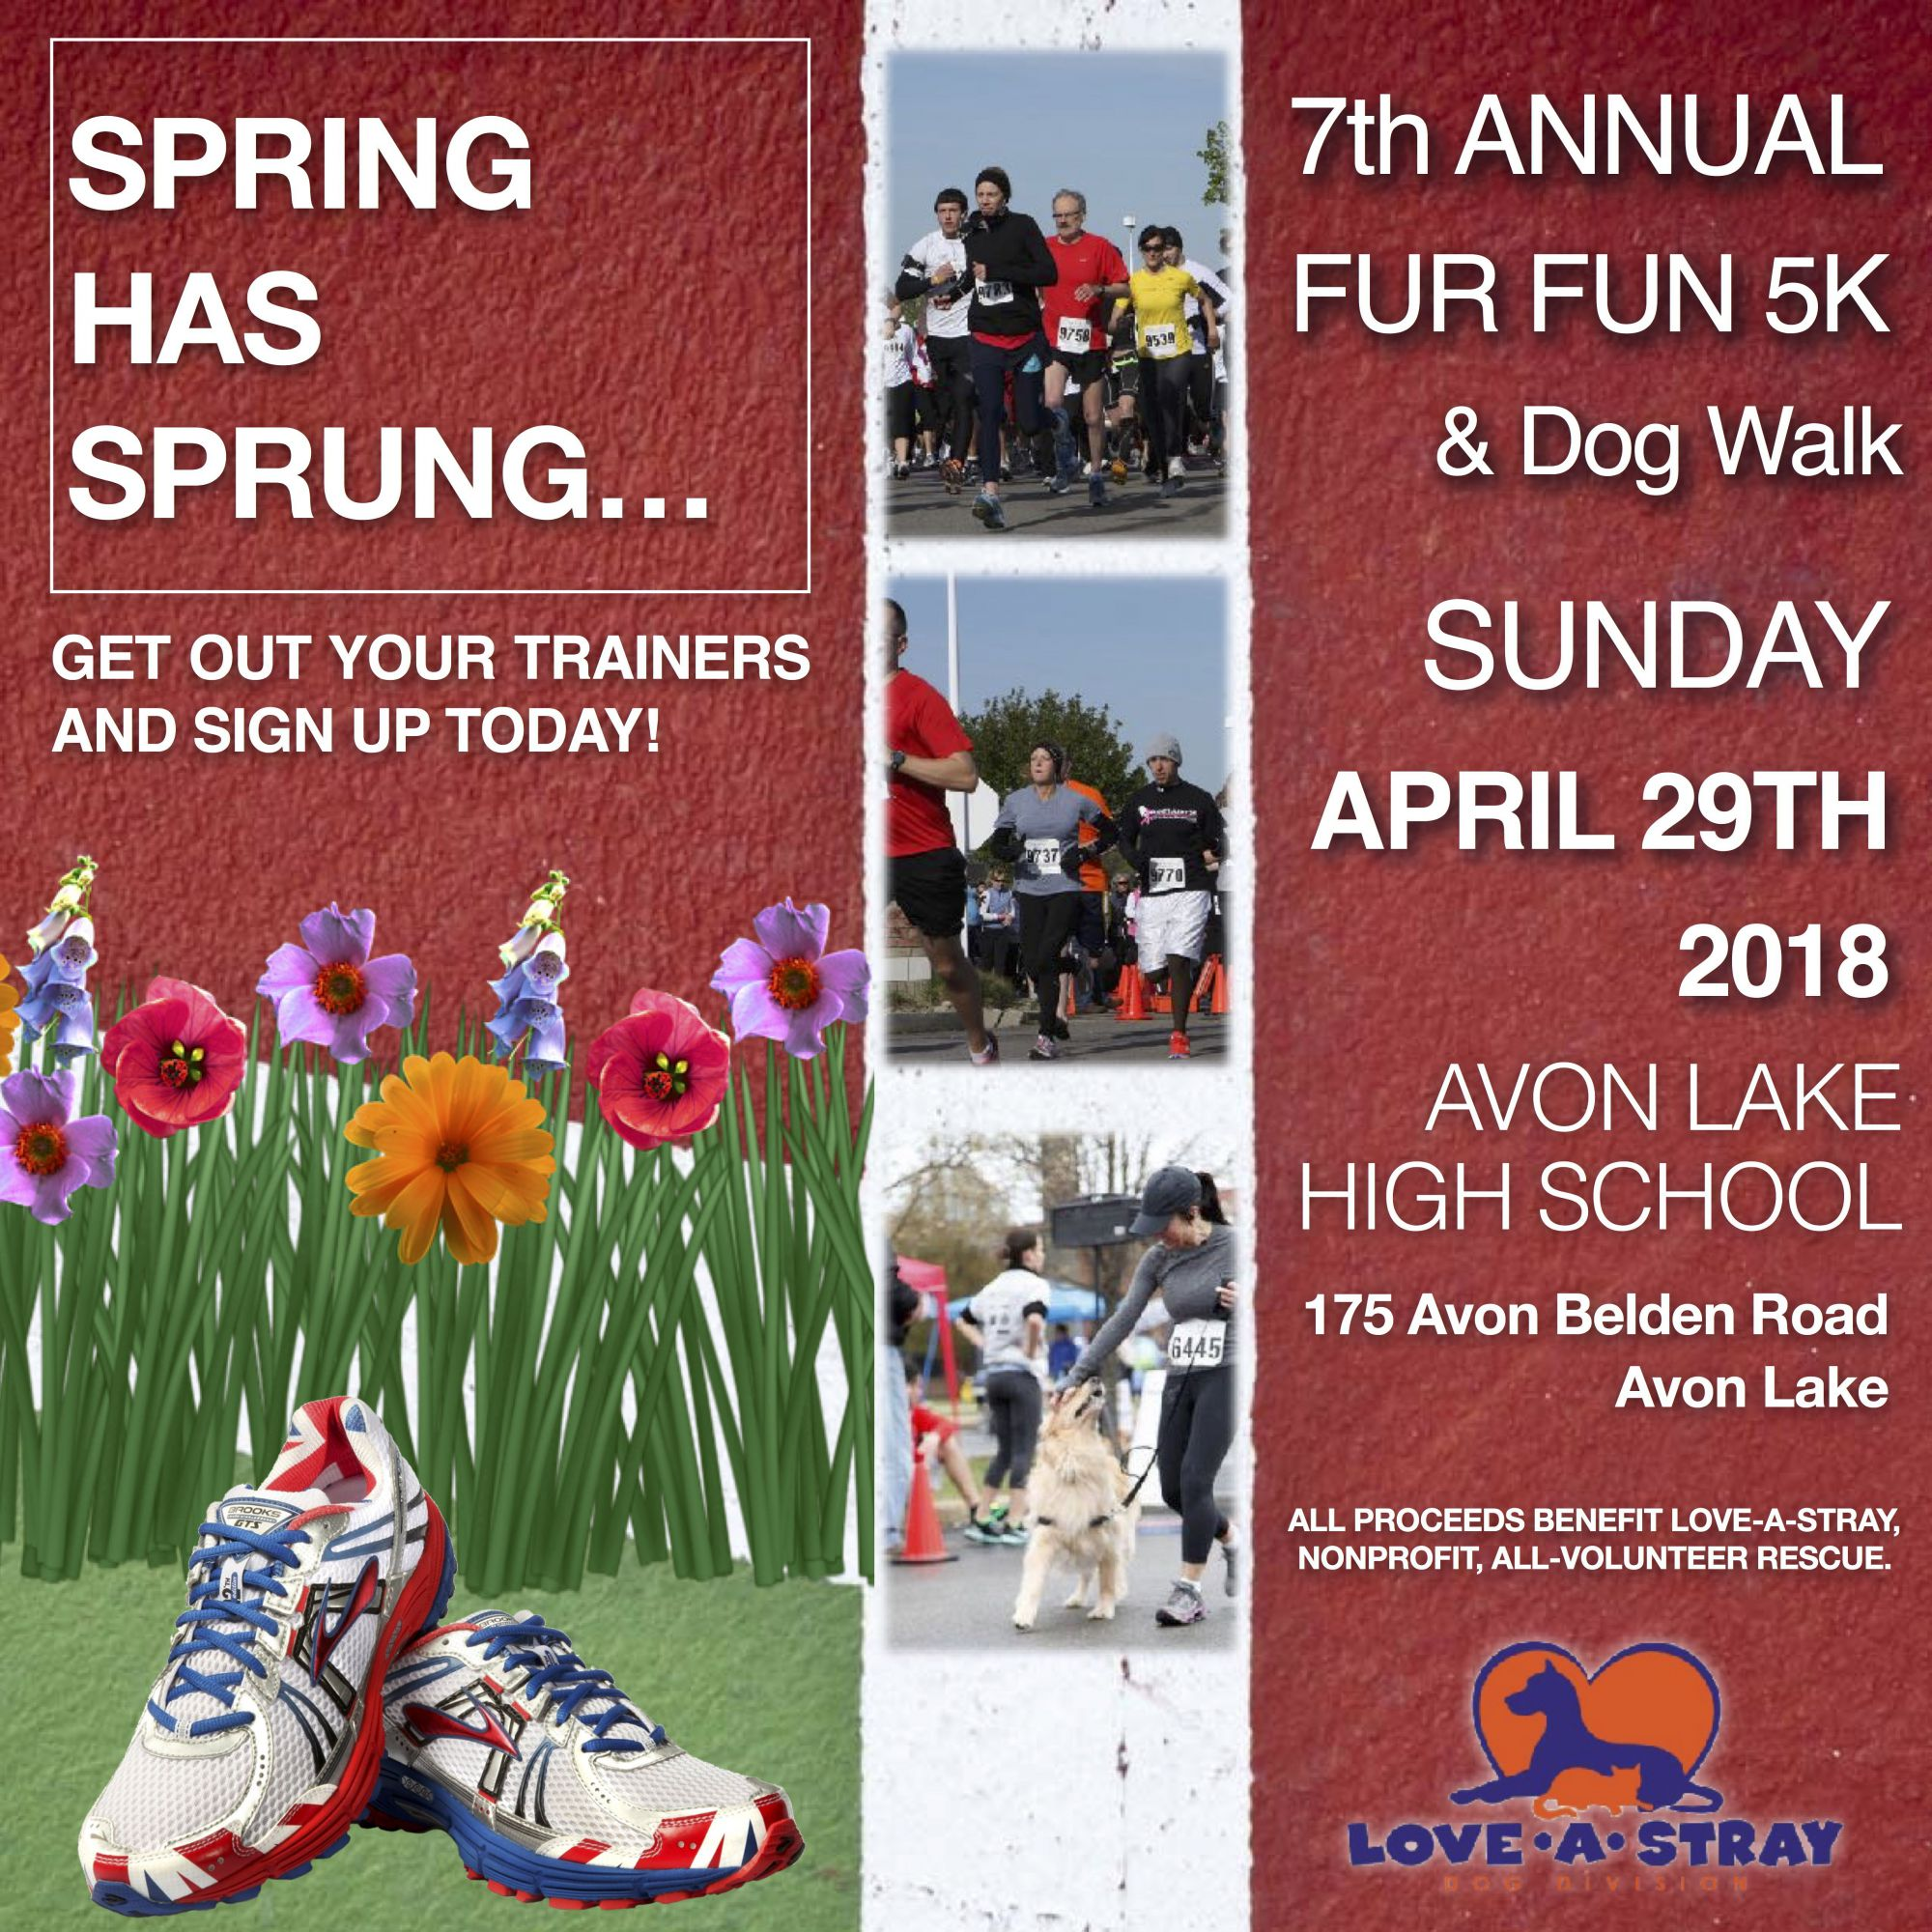 2018 5K Fur Fun Run